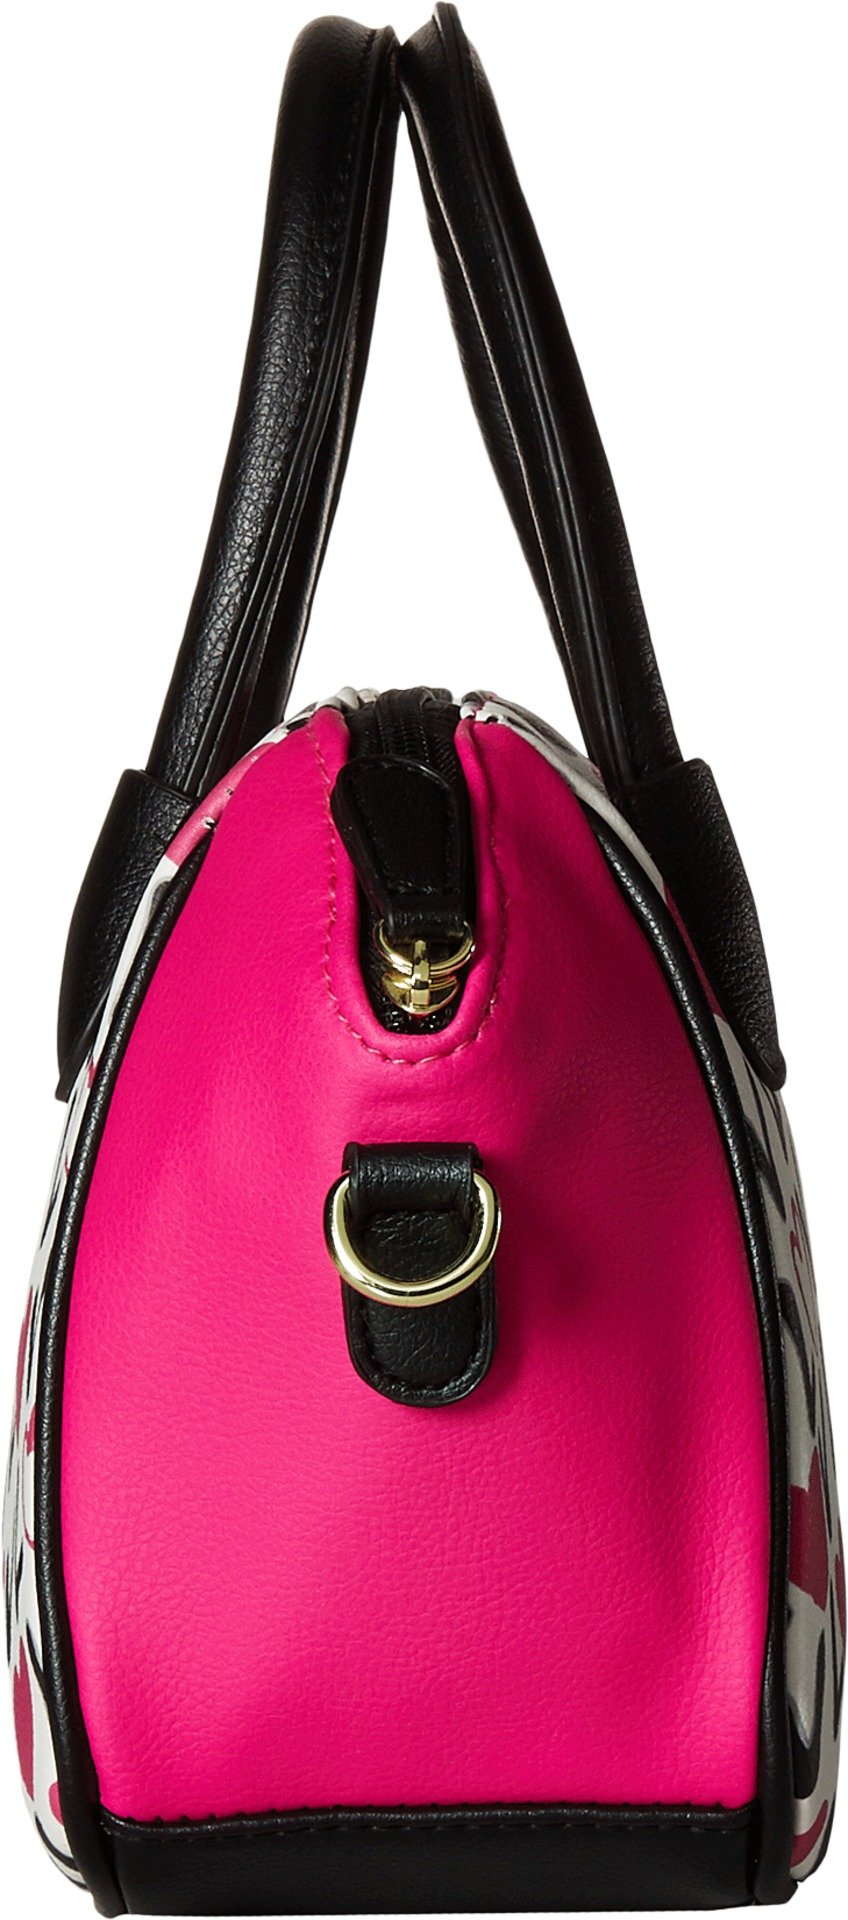 Luv Betsey Women's Quinn Mini Size PVC Satchel Love Pink-Az One Size by Luv Betsey (Image #3)